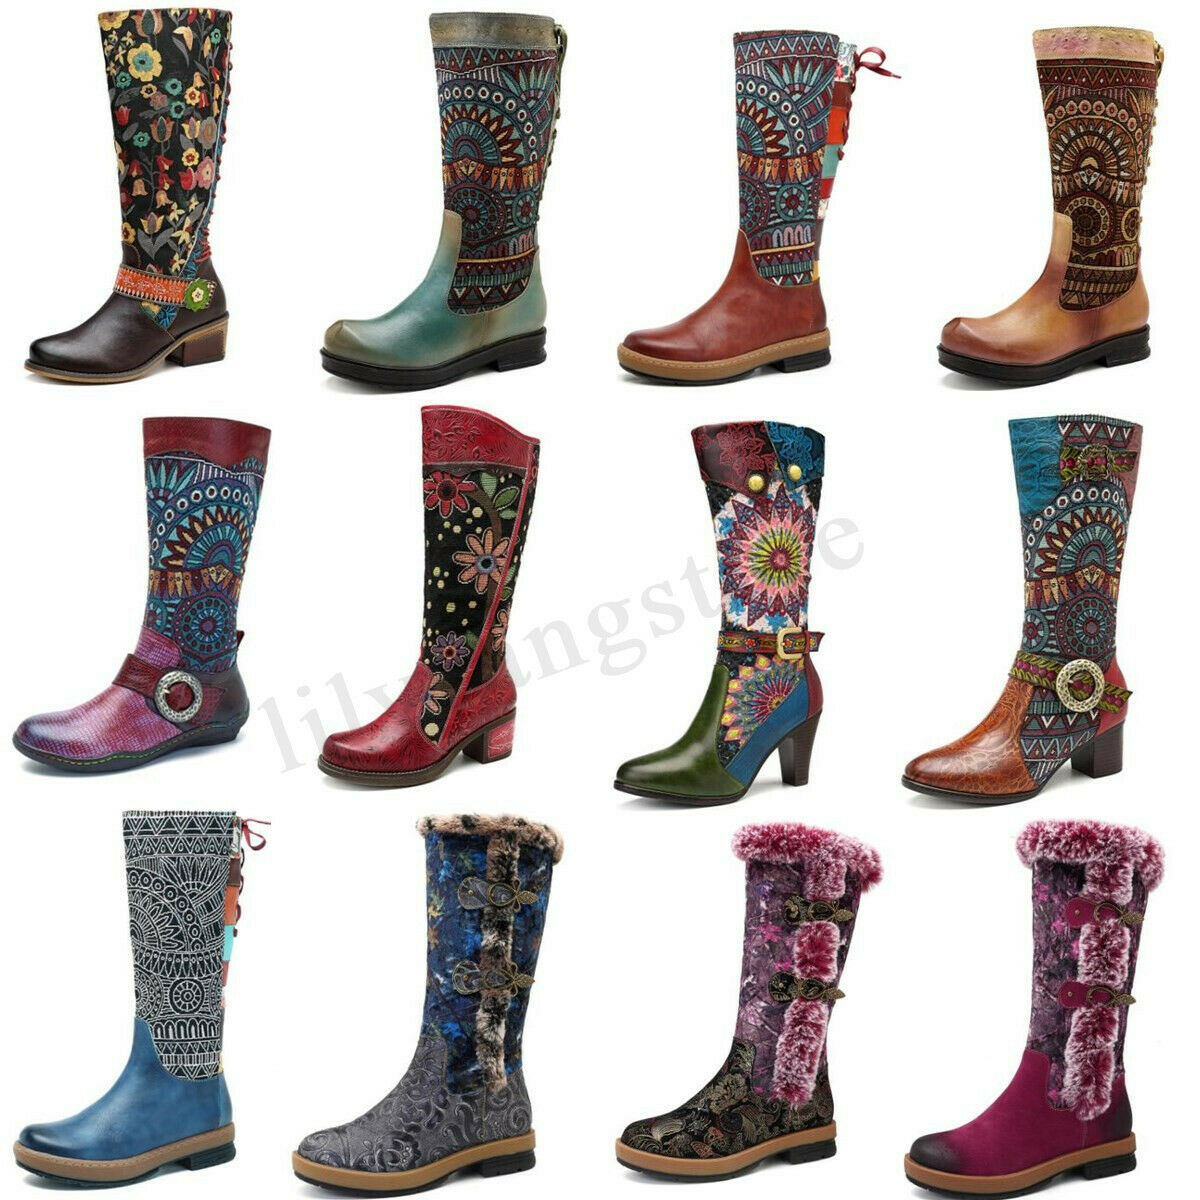 SOCOFY Women Retro Knee High Boots Splicing Jacquard Fur Causal Lace up Zip